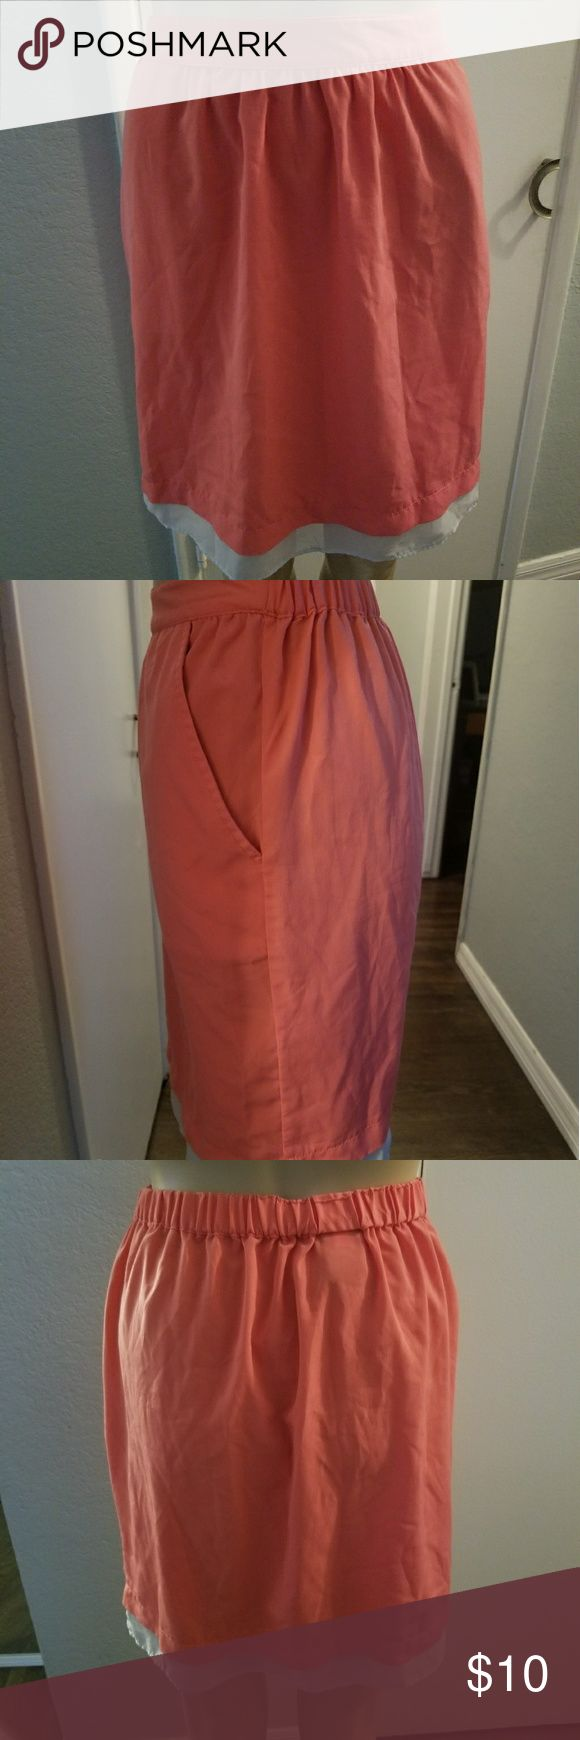 Skirt Coral knee length skirt with pockets, perfect to complete any summmer look. Has a grey underlining that peaks through at the bottom. Has no stains or rips. Mossimo Supply Co. Skirts Midi